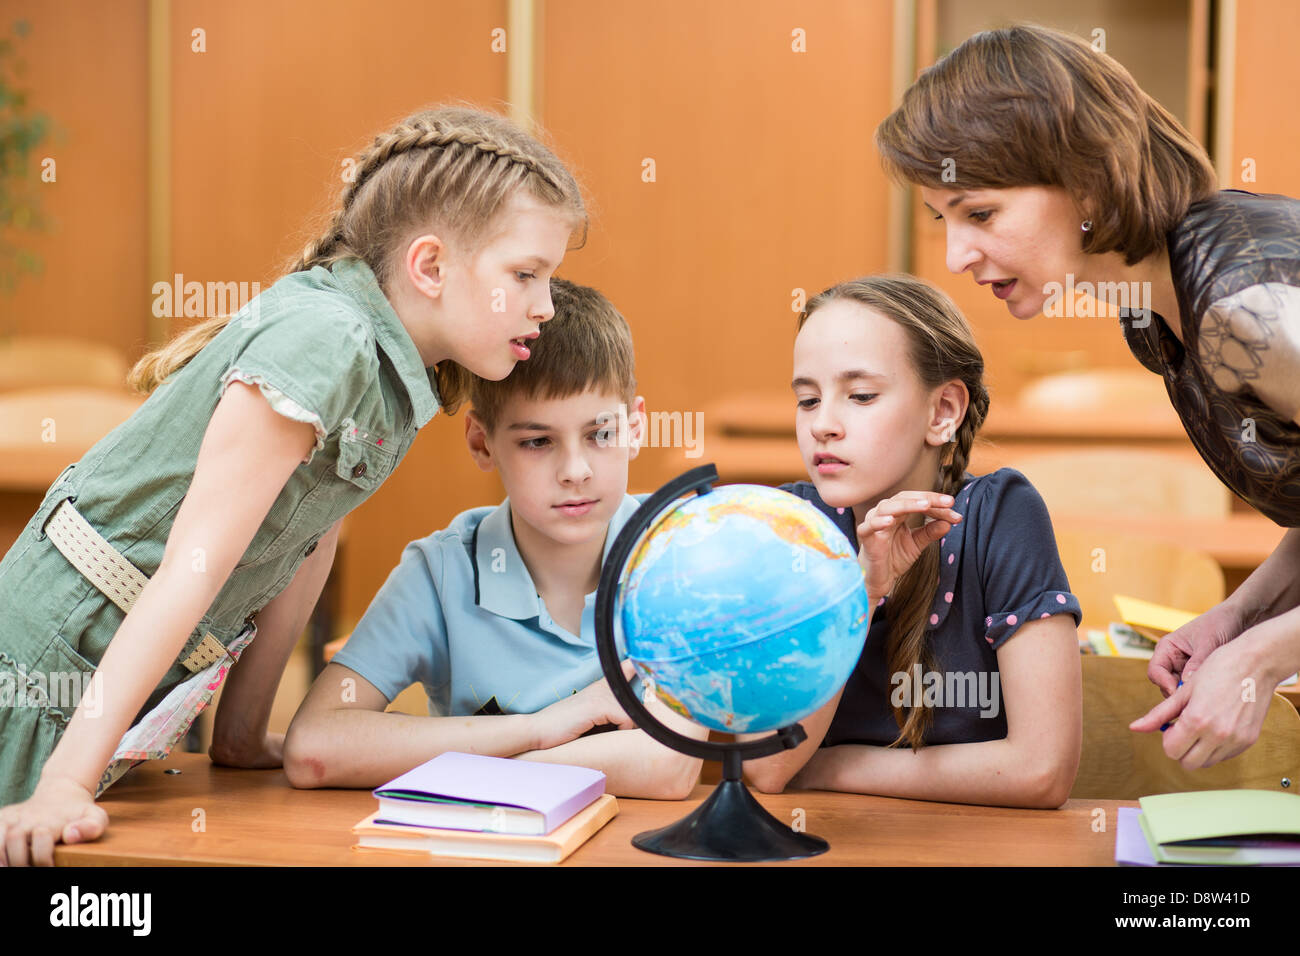 pupils studying a globe together with teacher - Stock Image